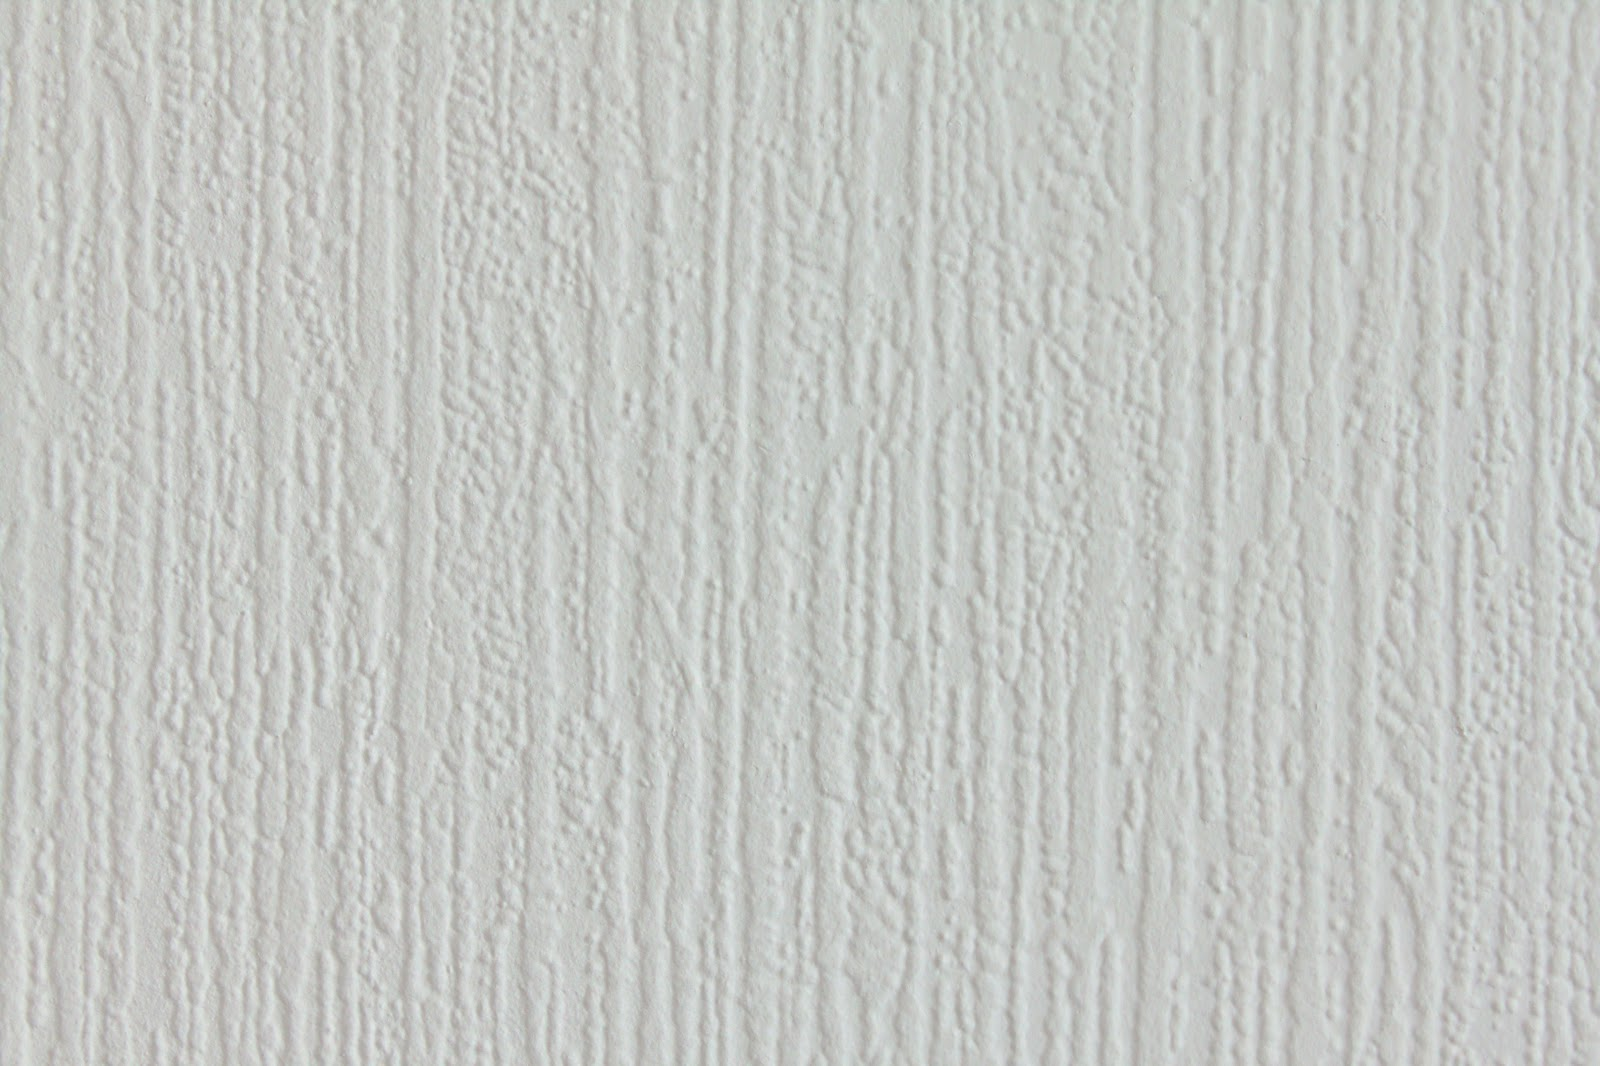 Mr textures wall plaster texture white stucco paper for Wall to wall paper